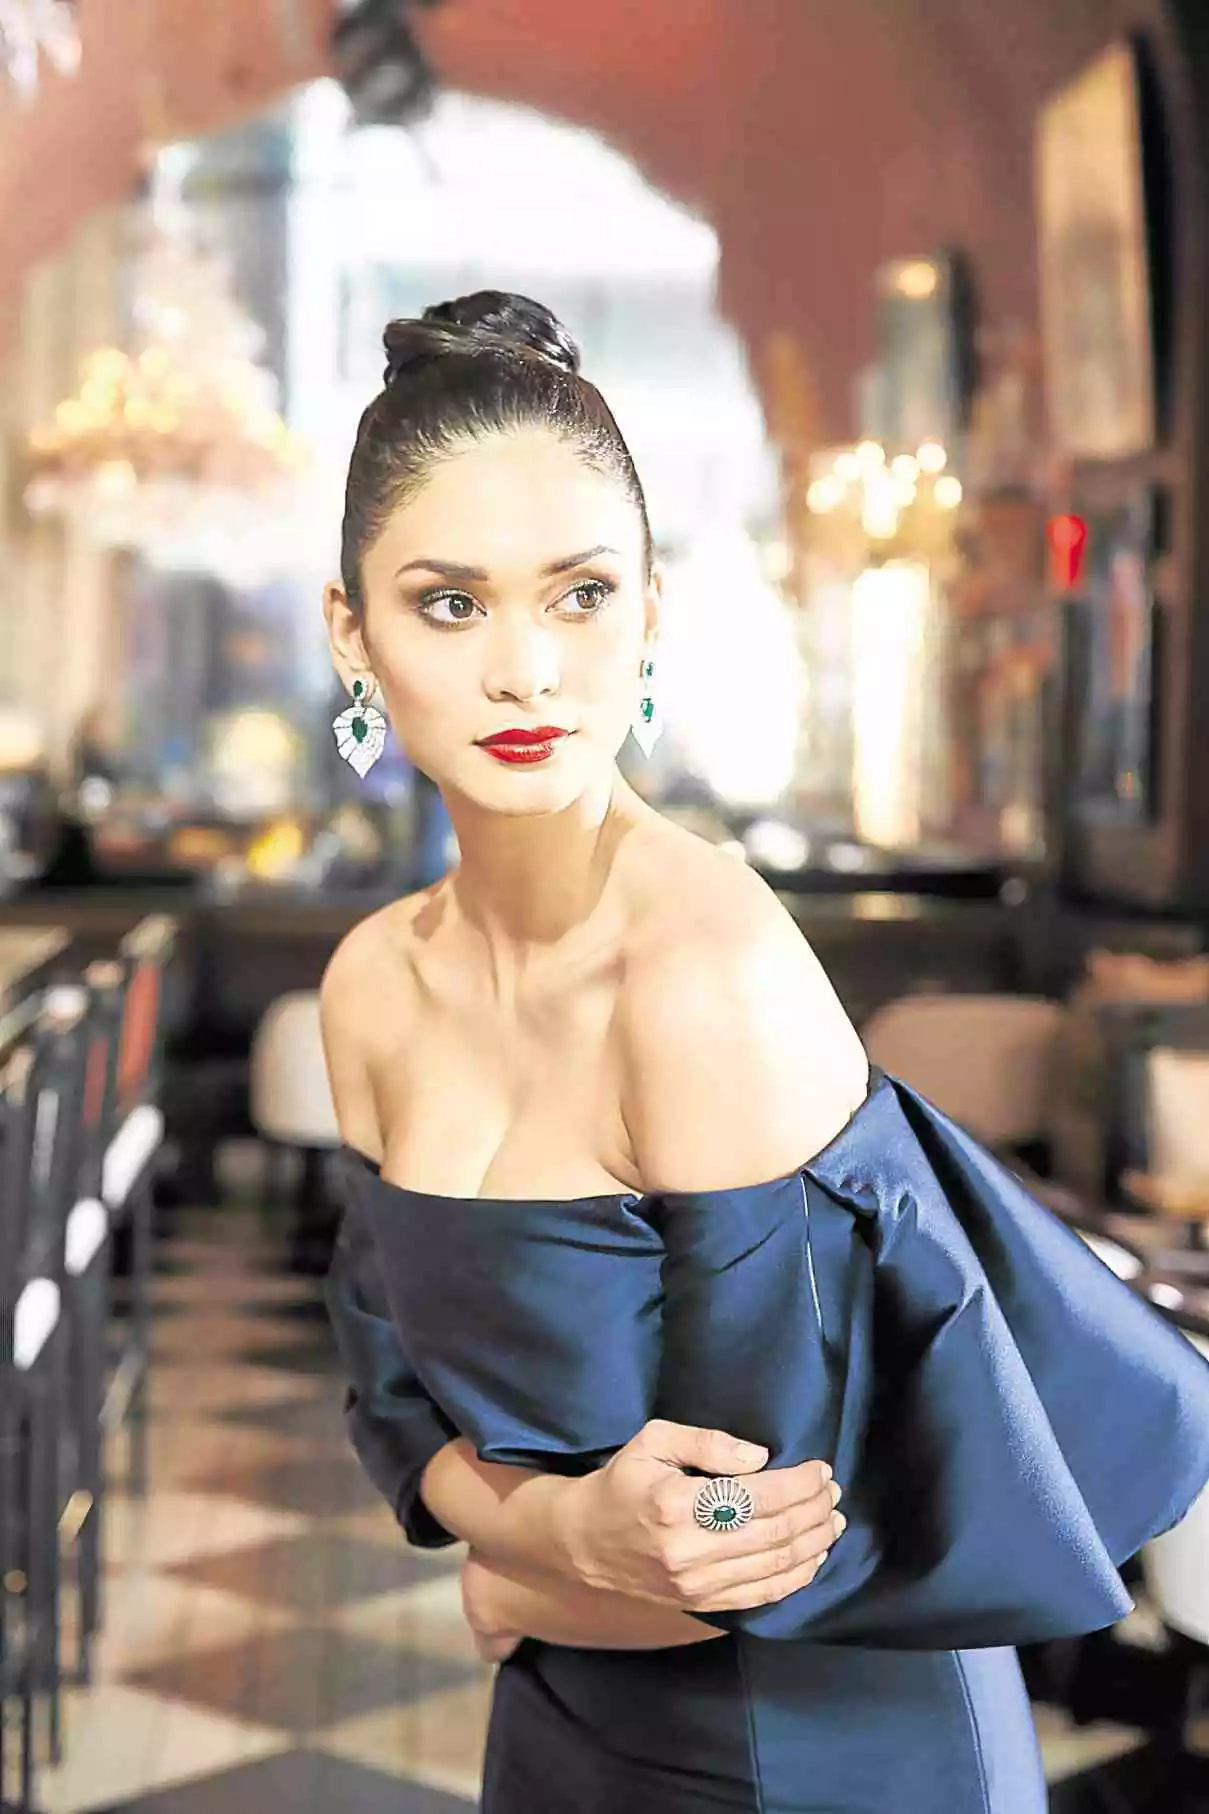 Pia Wurtzbach: Where should I take the girls?